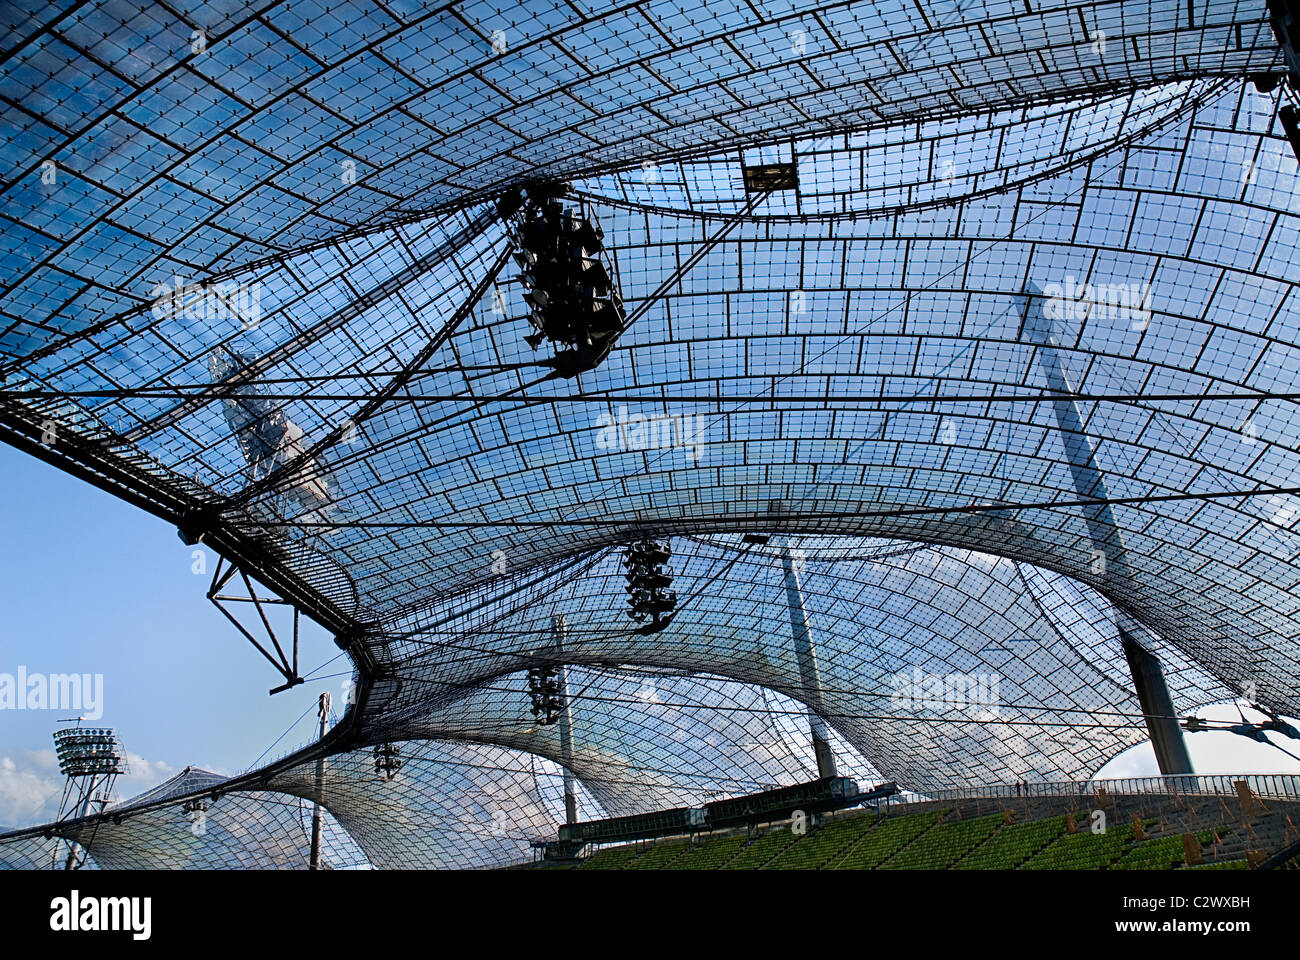 Germany Bavaria Munich 1972 Olympic Stadium curved section of bright green seating under canopy roof of acrylic Stock Photo